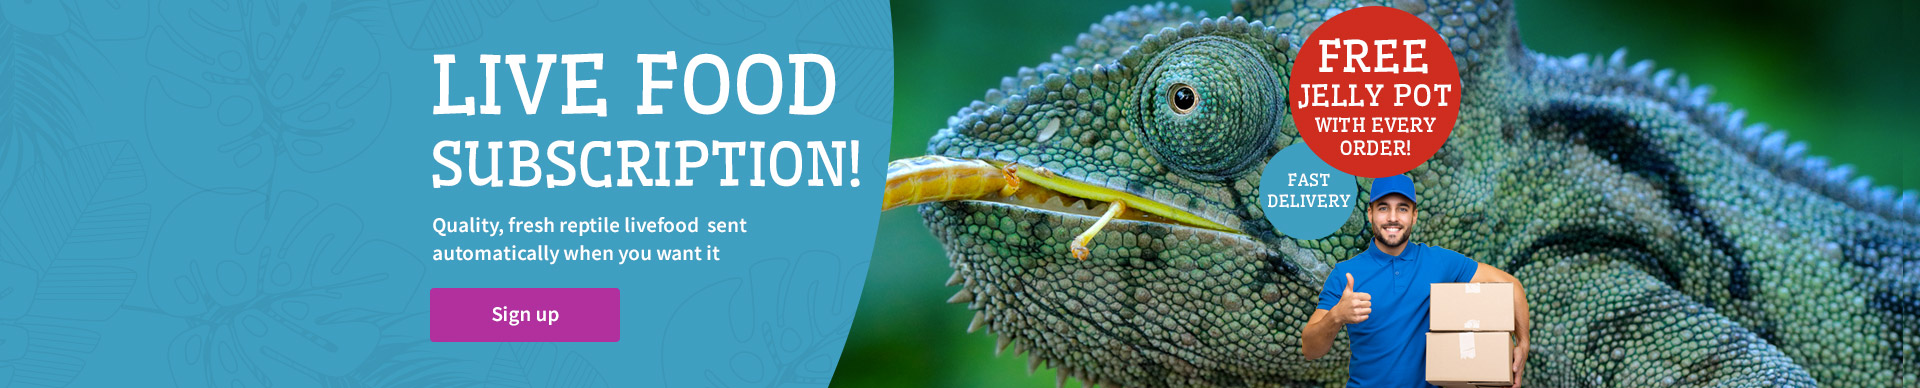 reptile livefood subscription